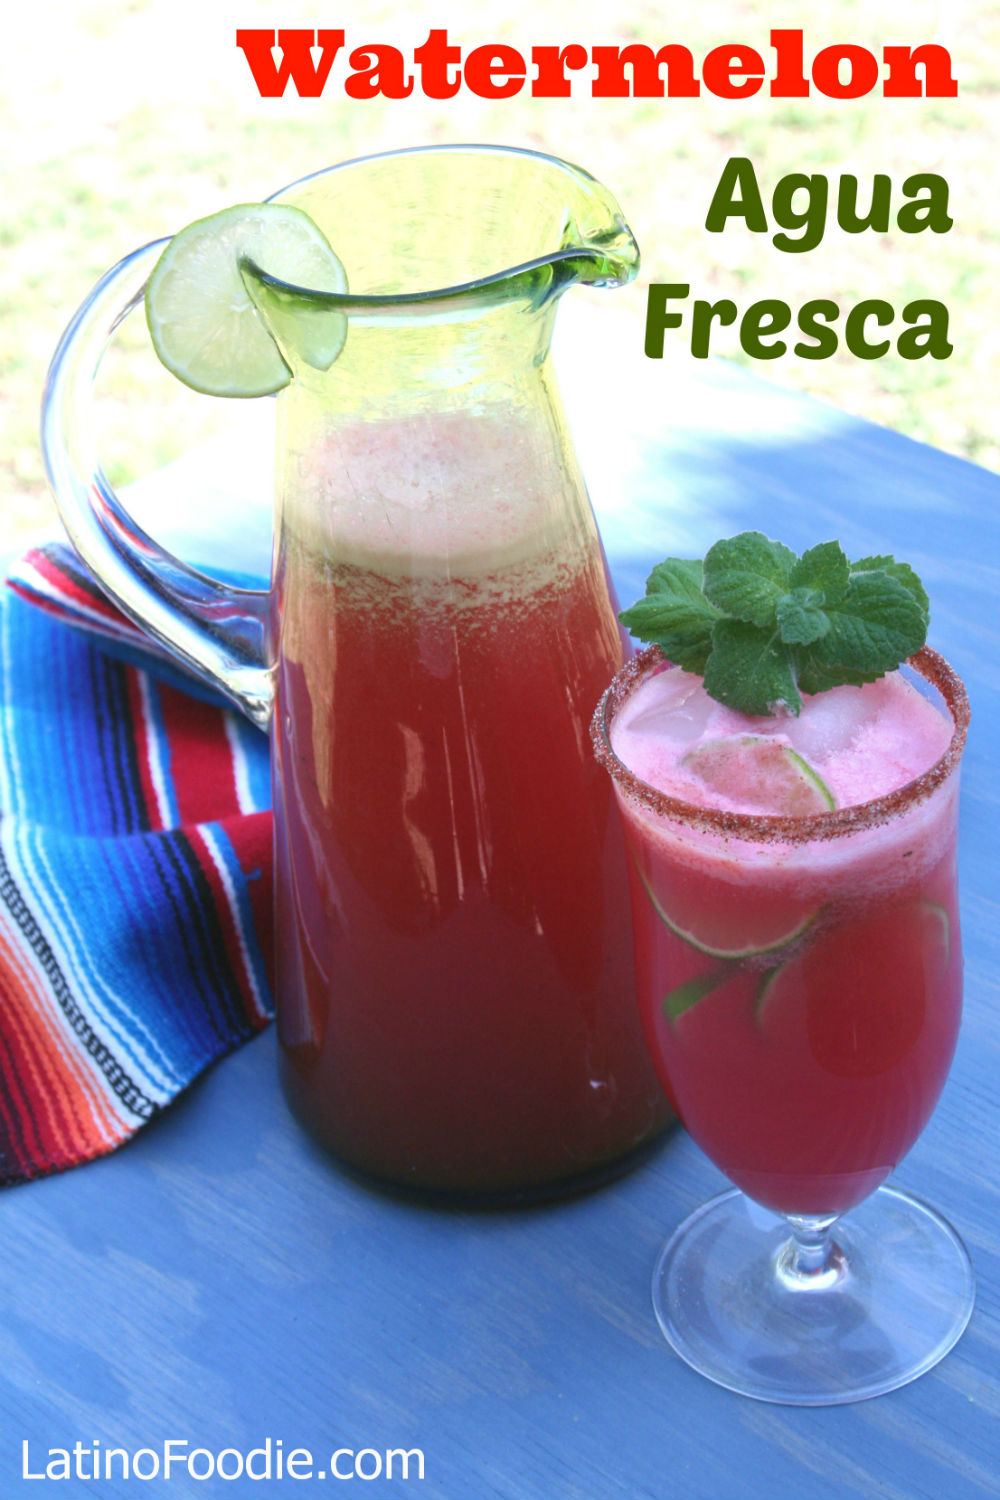 FINAL Watermelon Agua Fresca with Text